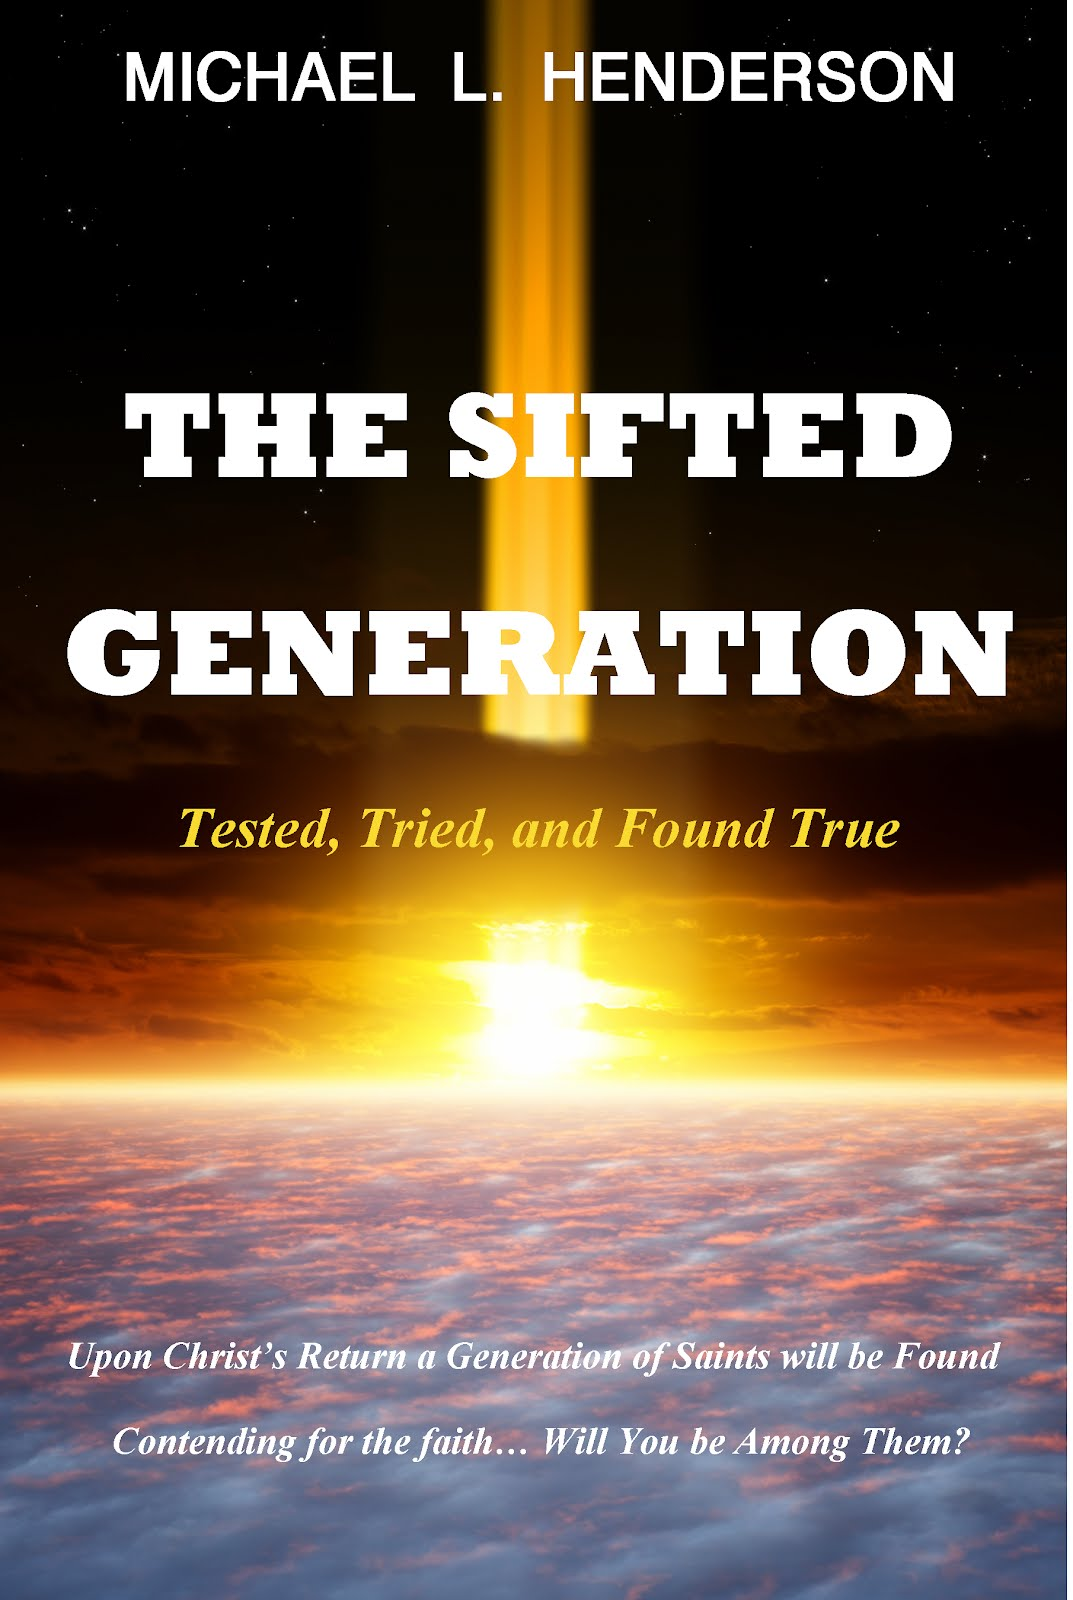 The Sifted Generation